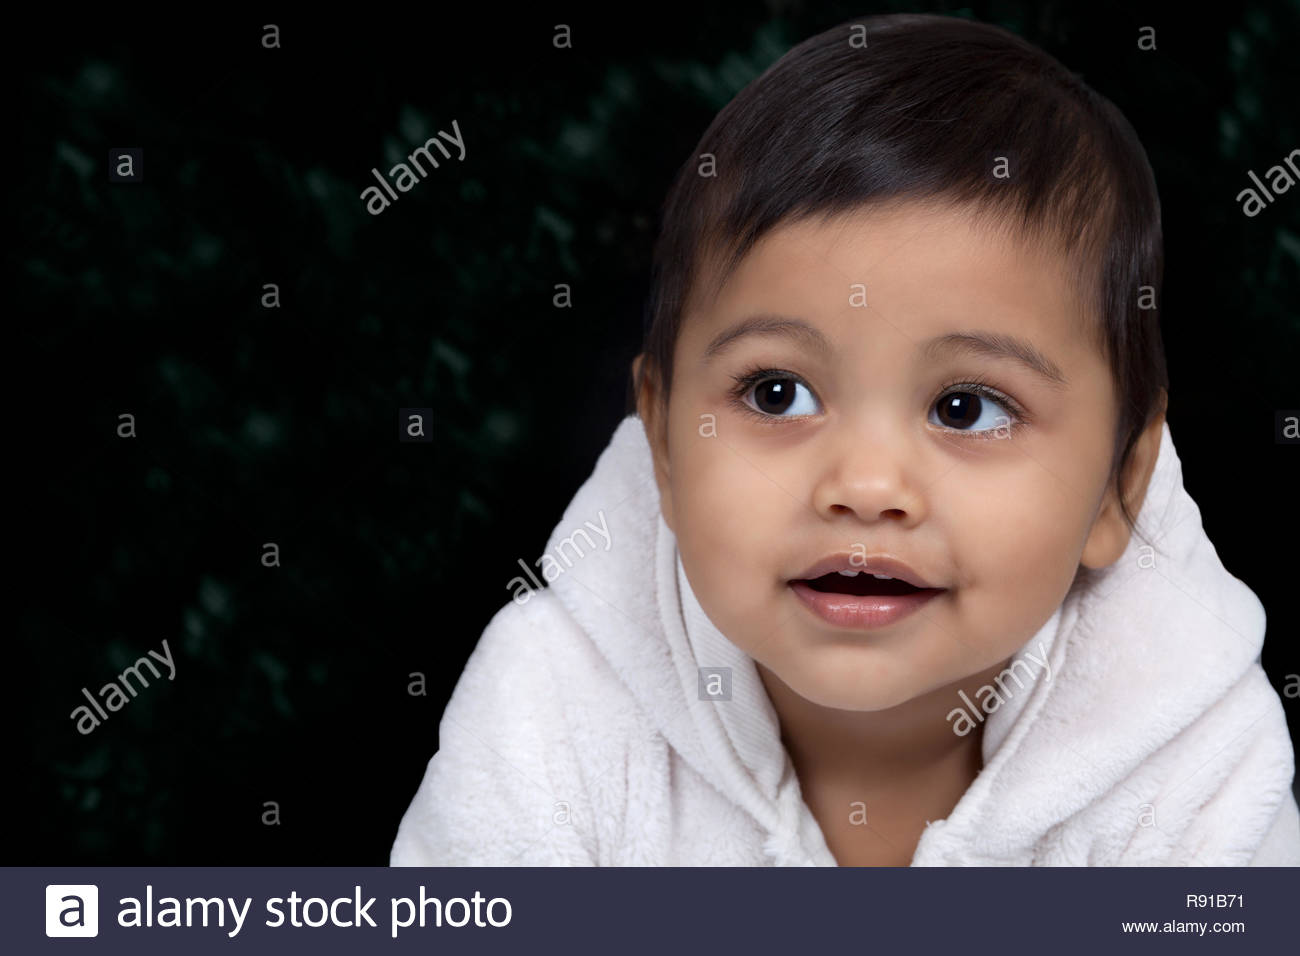 Cute baby face portrait, on dark background with copy space - Stock Image